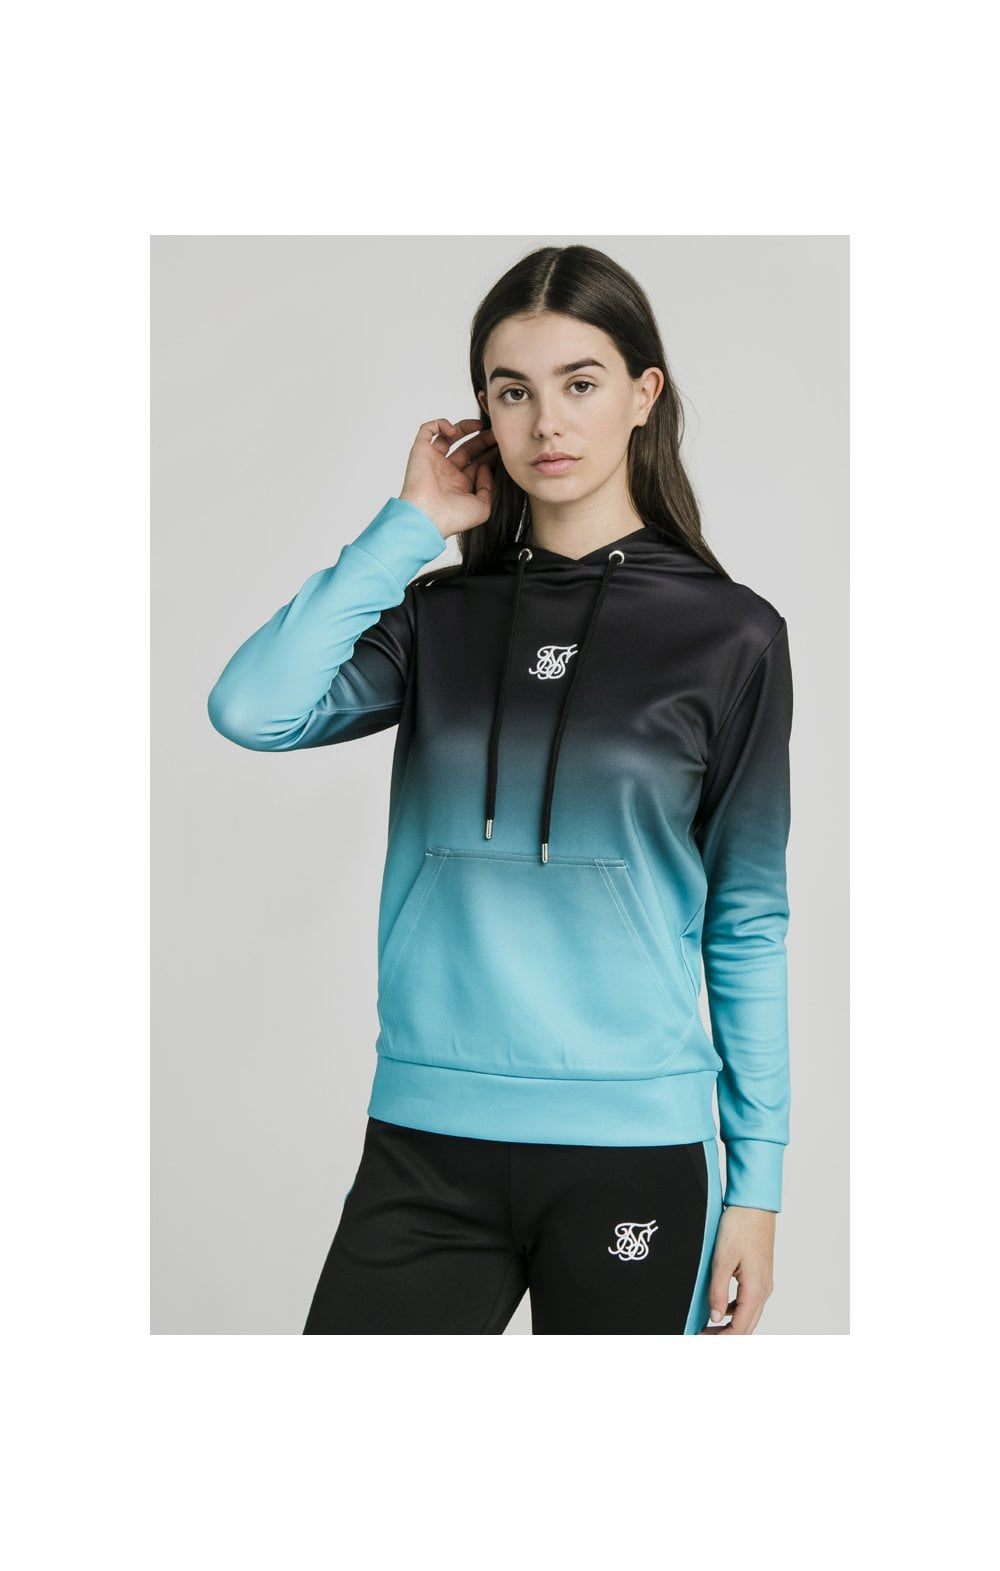 Load image into Gallery viewer, SikSilk Fade Overhead Hoodie - Black & Teal (1)